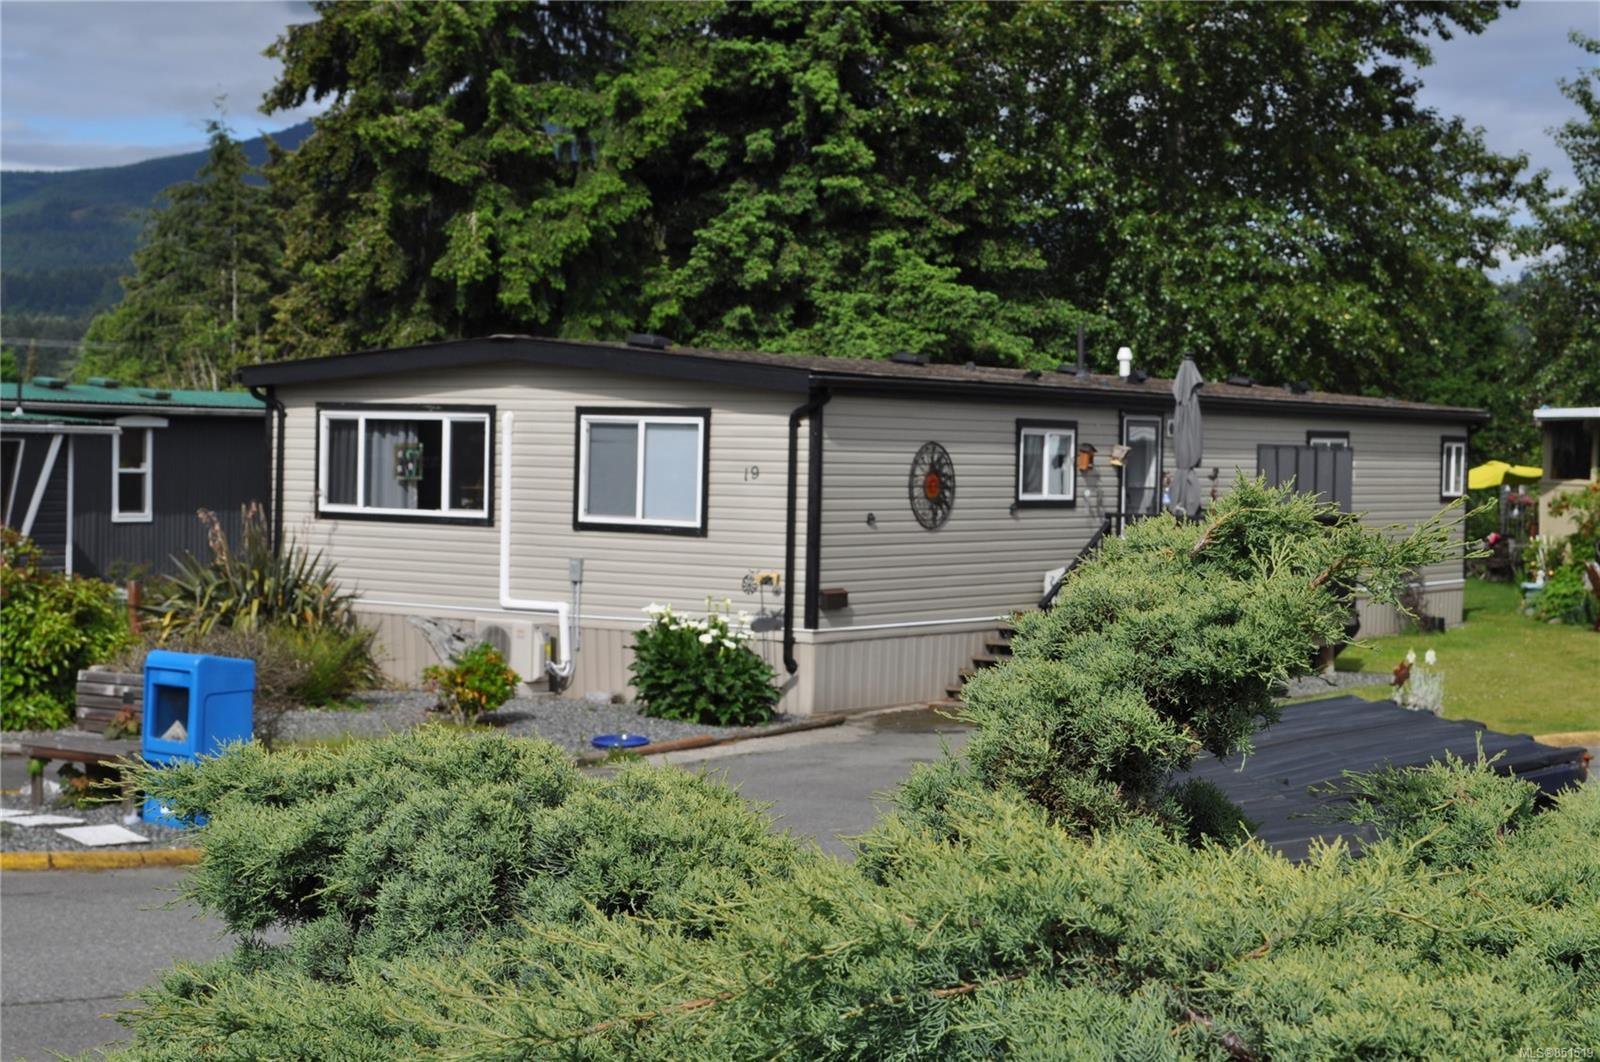 Main Photo: 19 80 5th St in : Na South Nanaimo Manufactured Home for sale (Nanaimo)  : MLS®# 851519